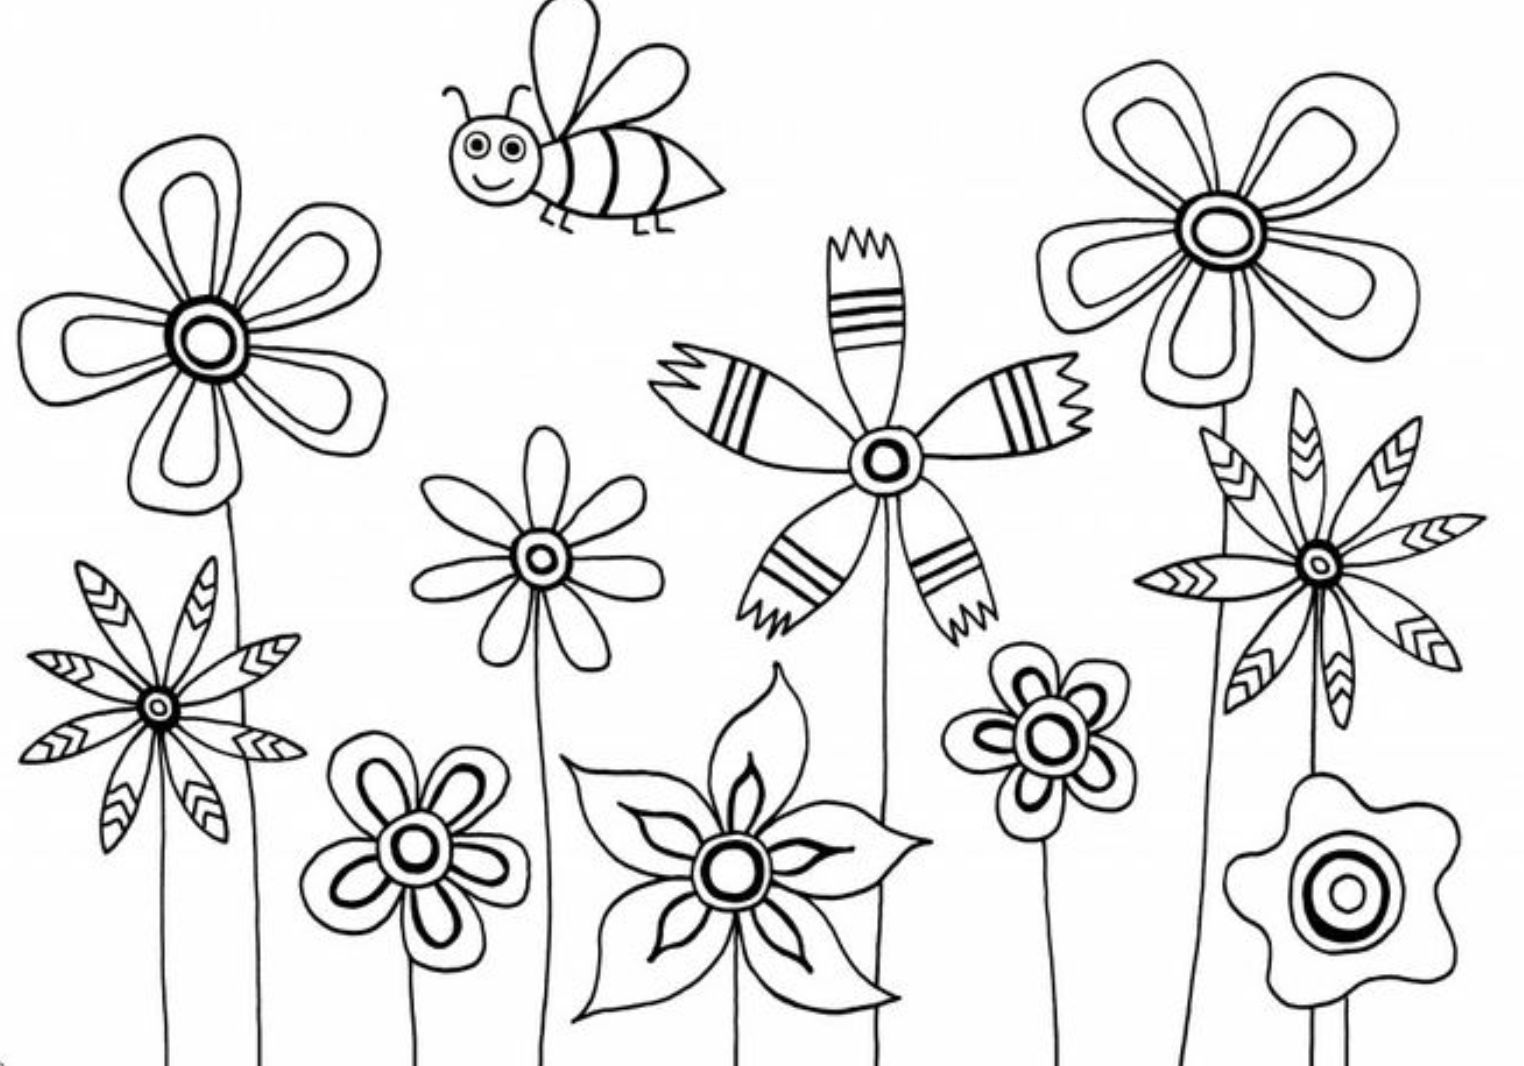 Roses For Kids Drawing at GetDrawings.com | Free for personal use ...